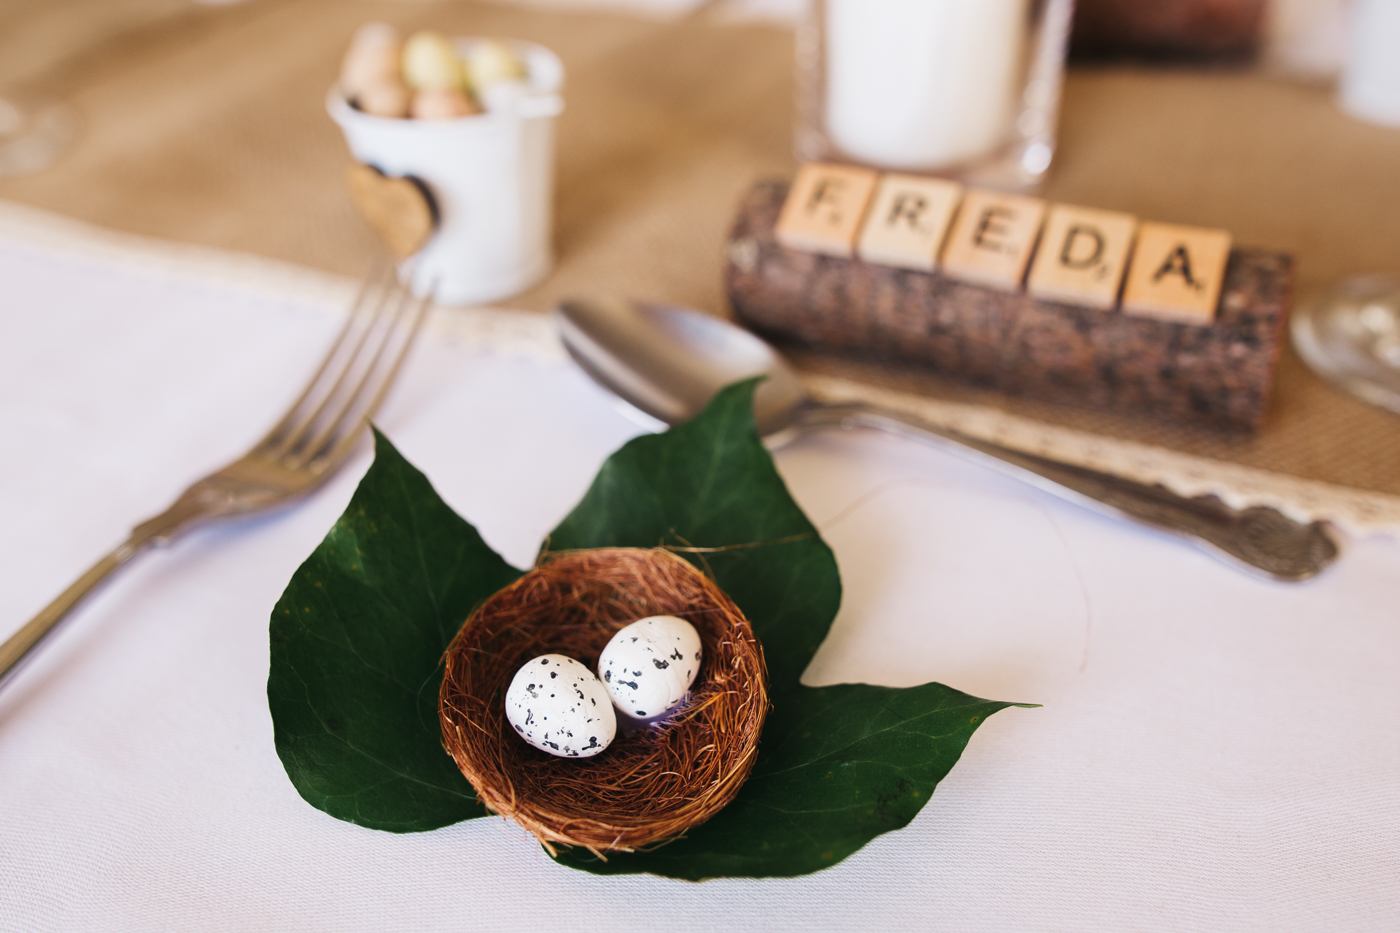 the details of the wedding table - wooden name places and birds nests. wedding at laskill house north yorkshire helmsley wedding photographer north east teesside